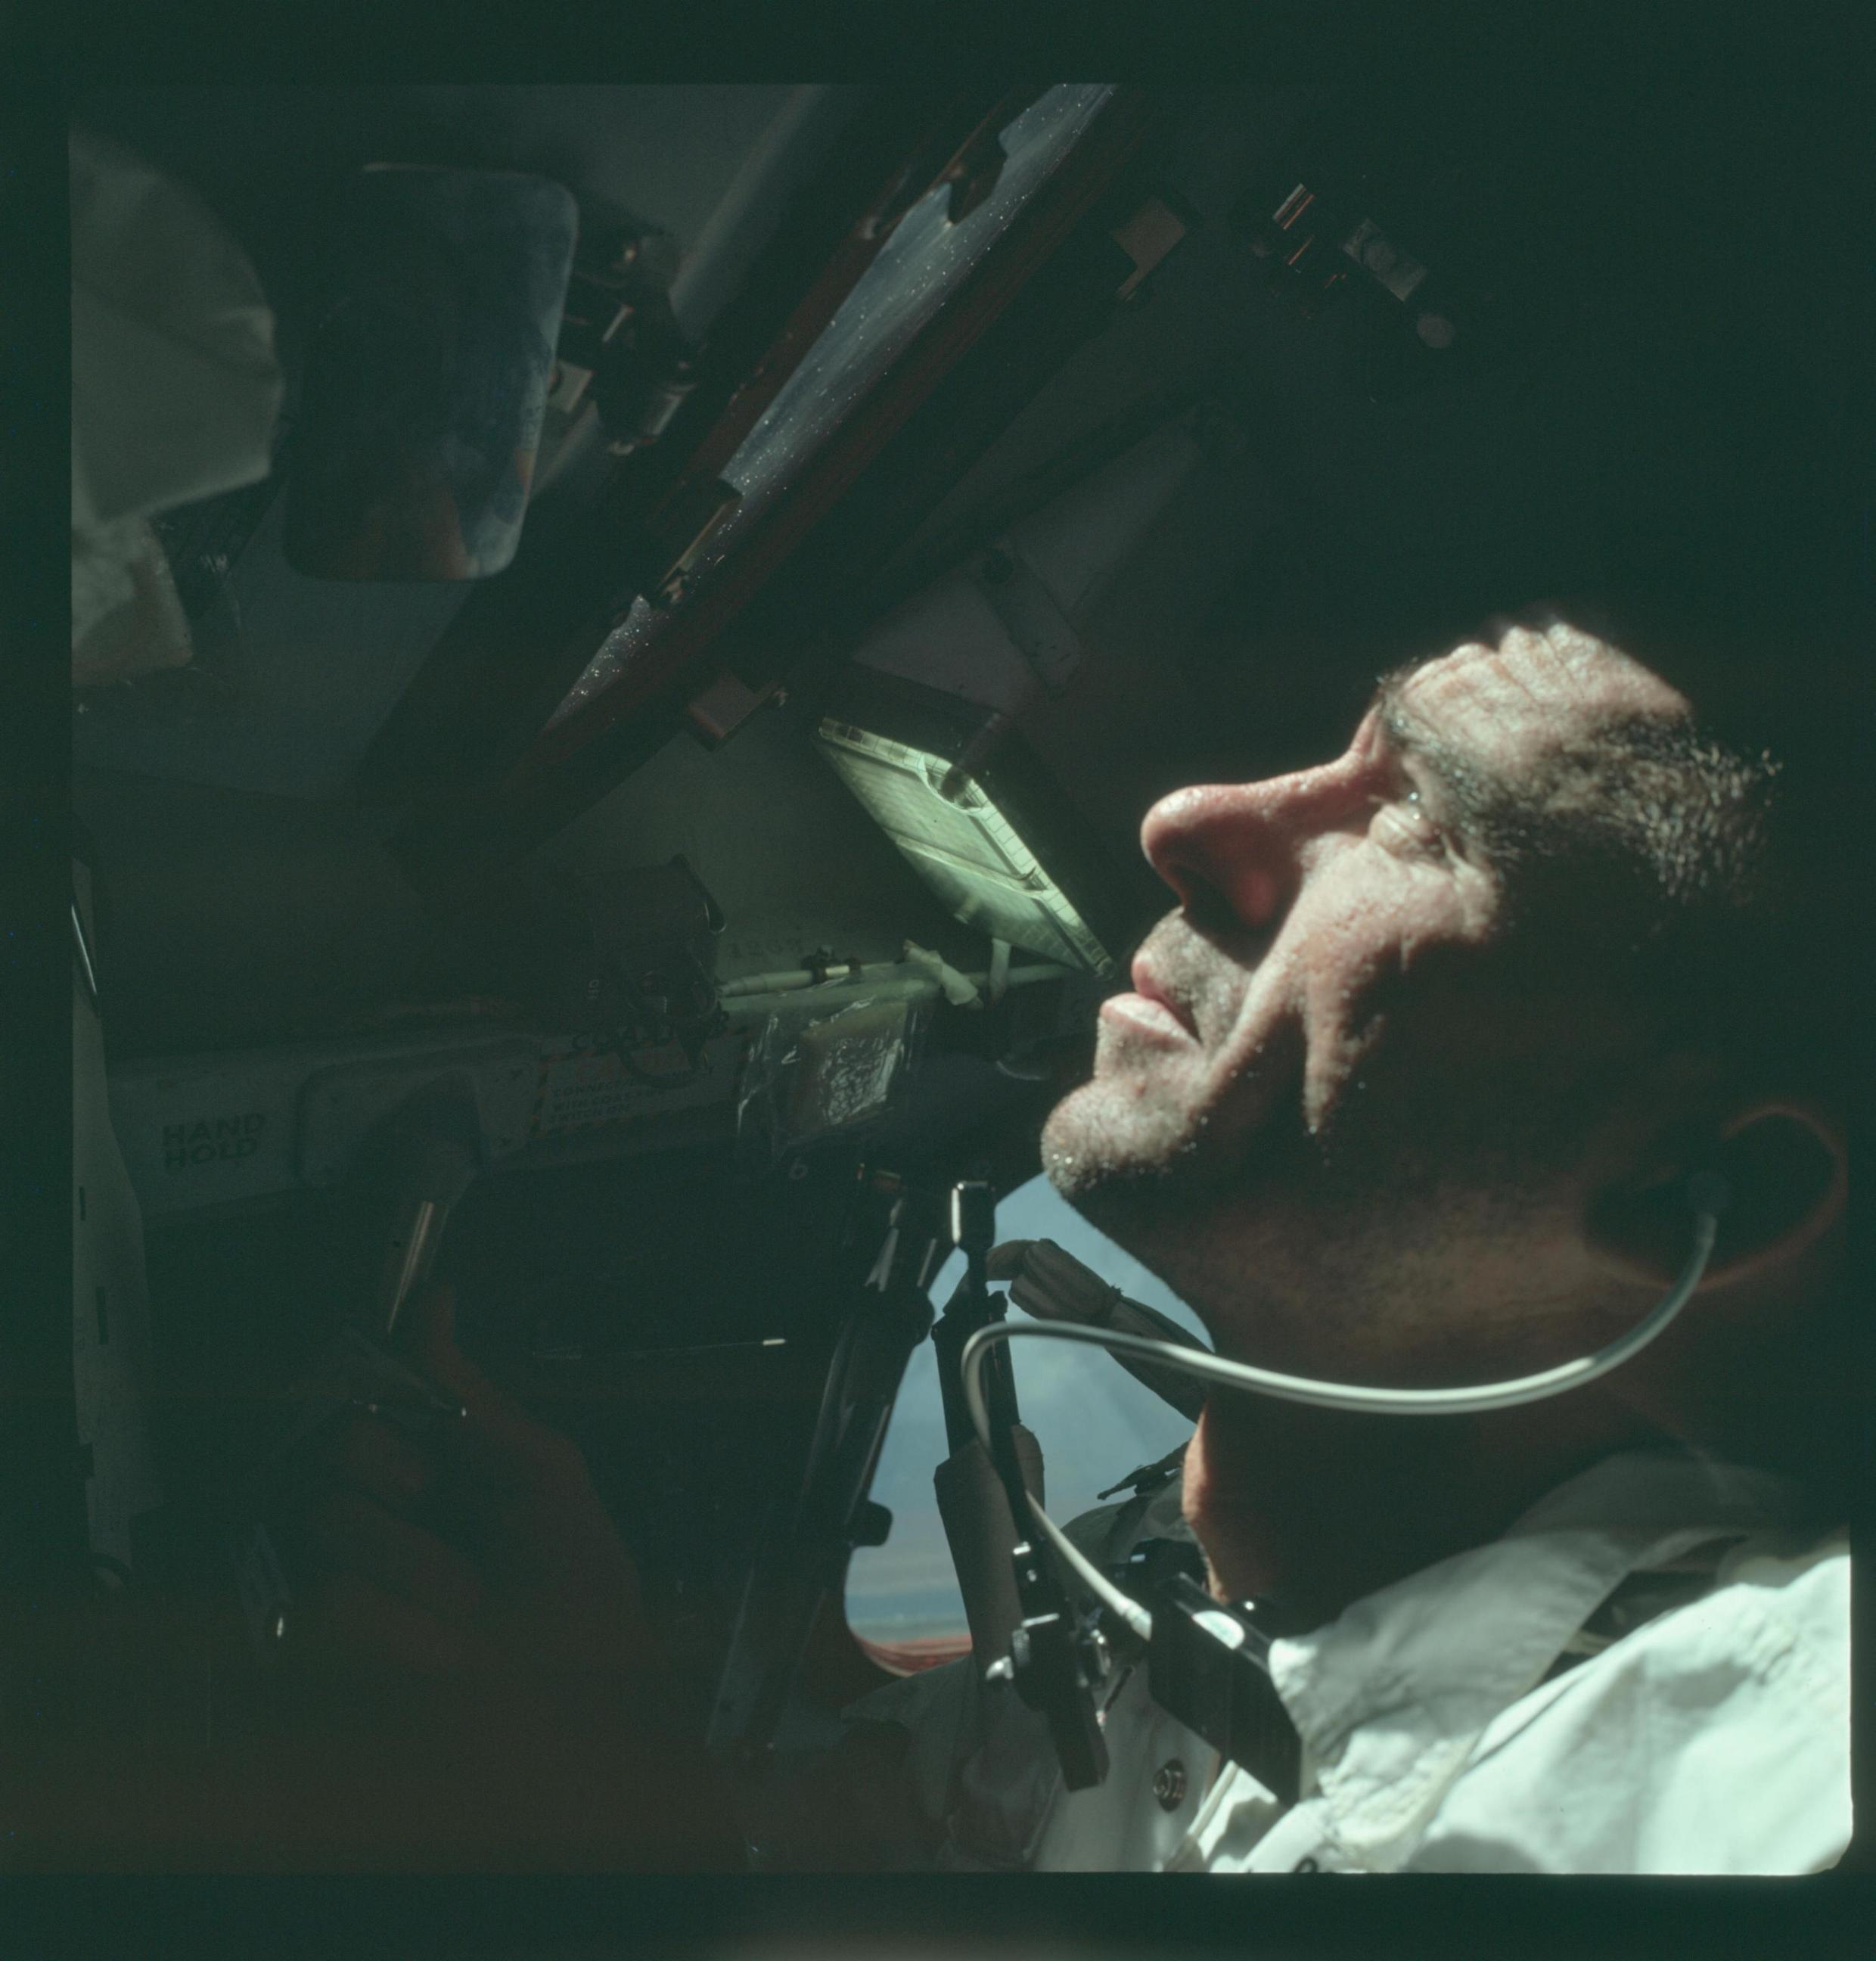 Astronaut Walter Cunningham, Apollo 7 lunar module pilot, is photographed during the Apollo 7 mission in this NASA handout photo